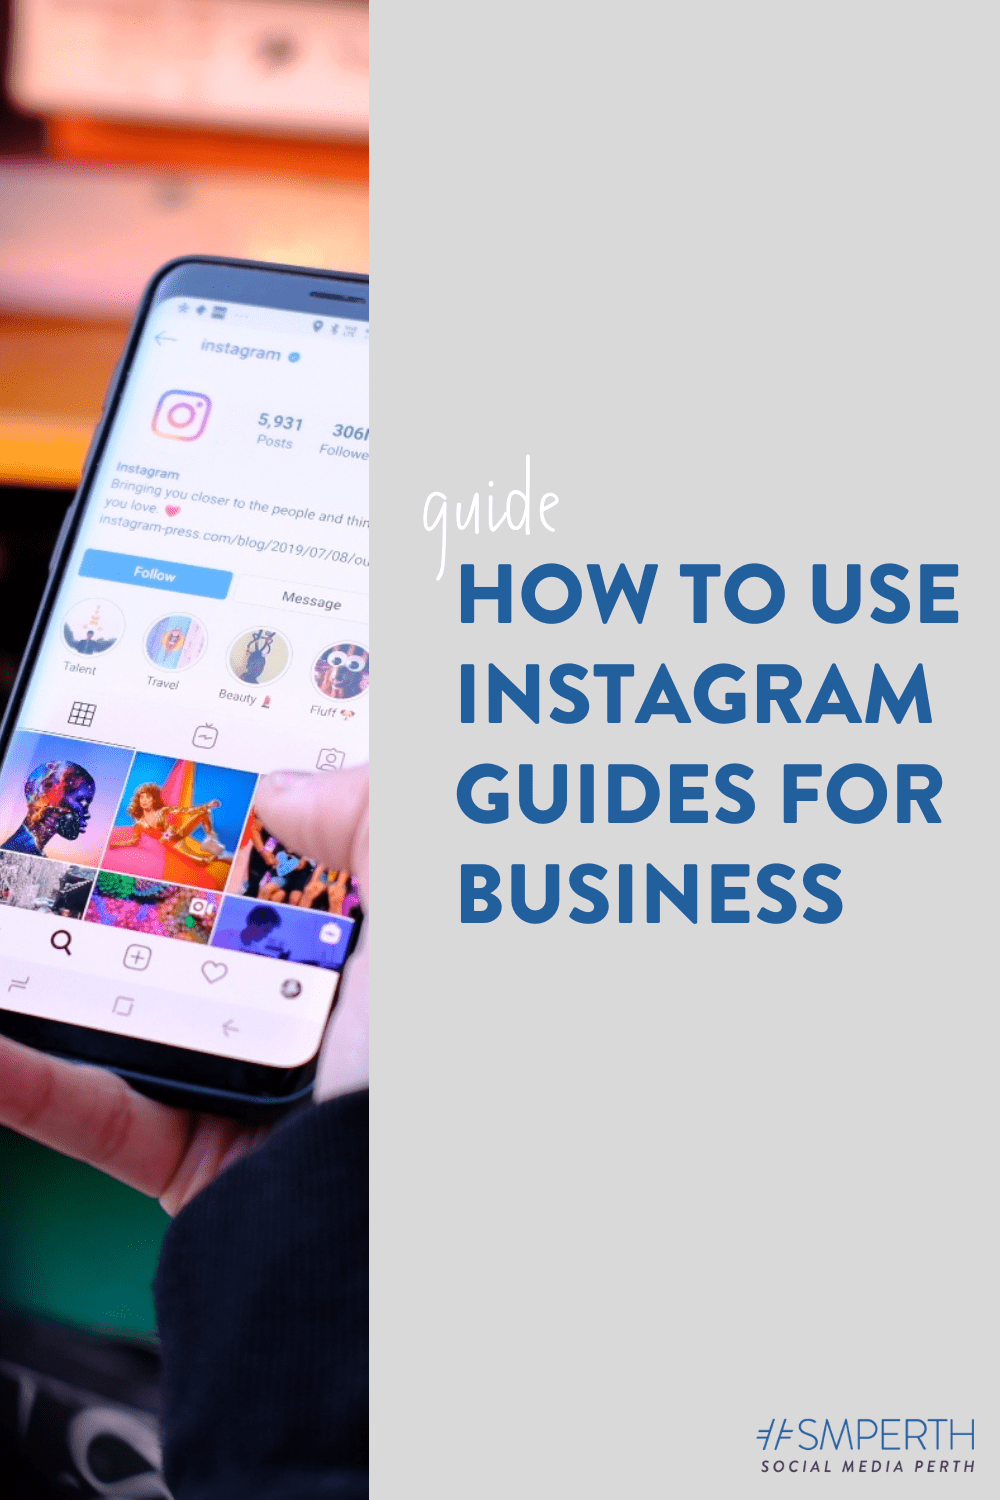 How to use Instagram Guides for business